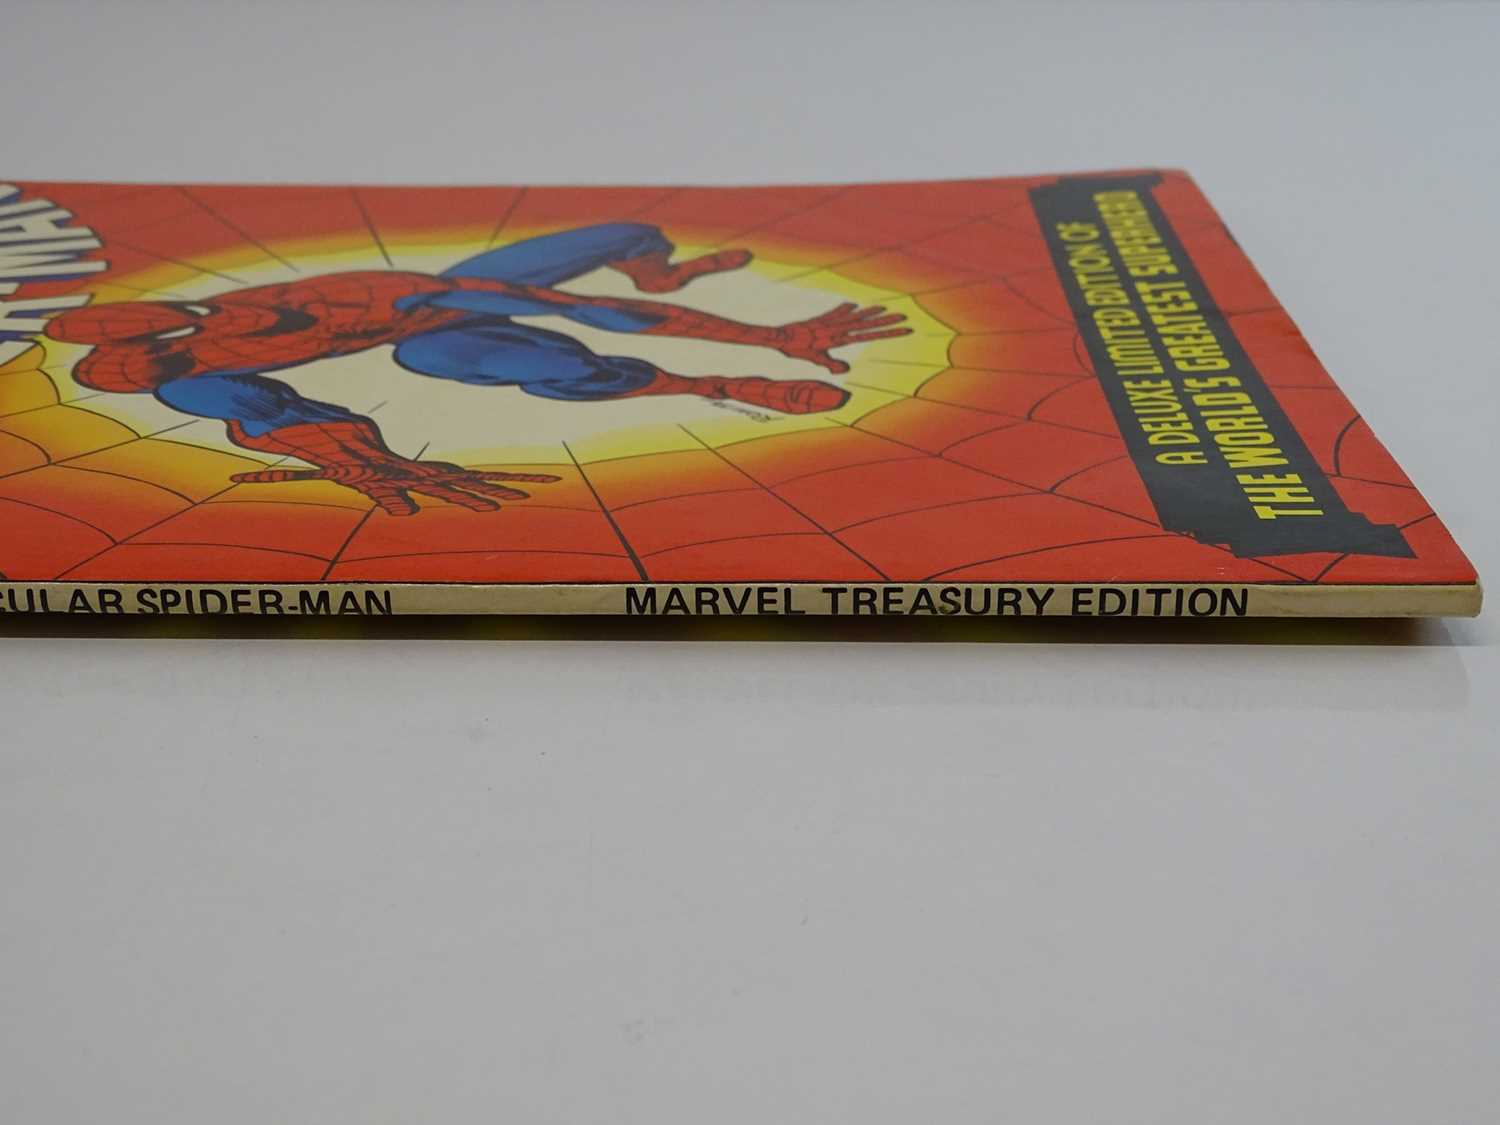 Marvel Treasury Edition #1 Spectacular Spider-Man (Marvel - 1974) Includes Gil Kane and Steve - Image 8 of 8